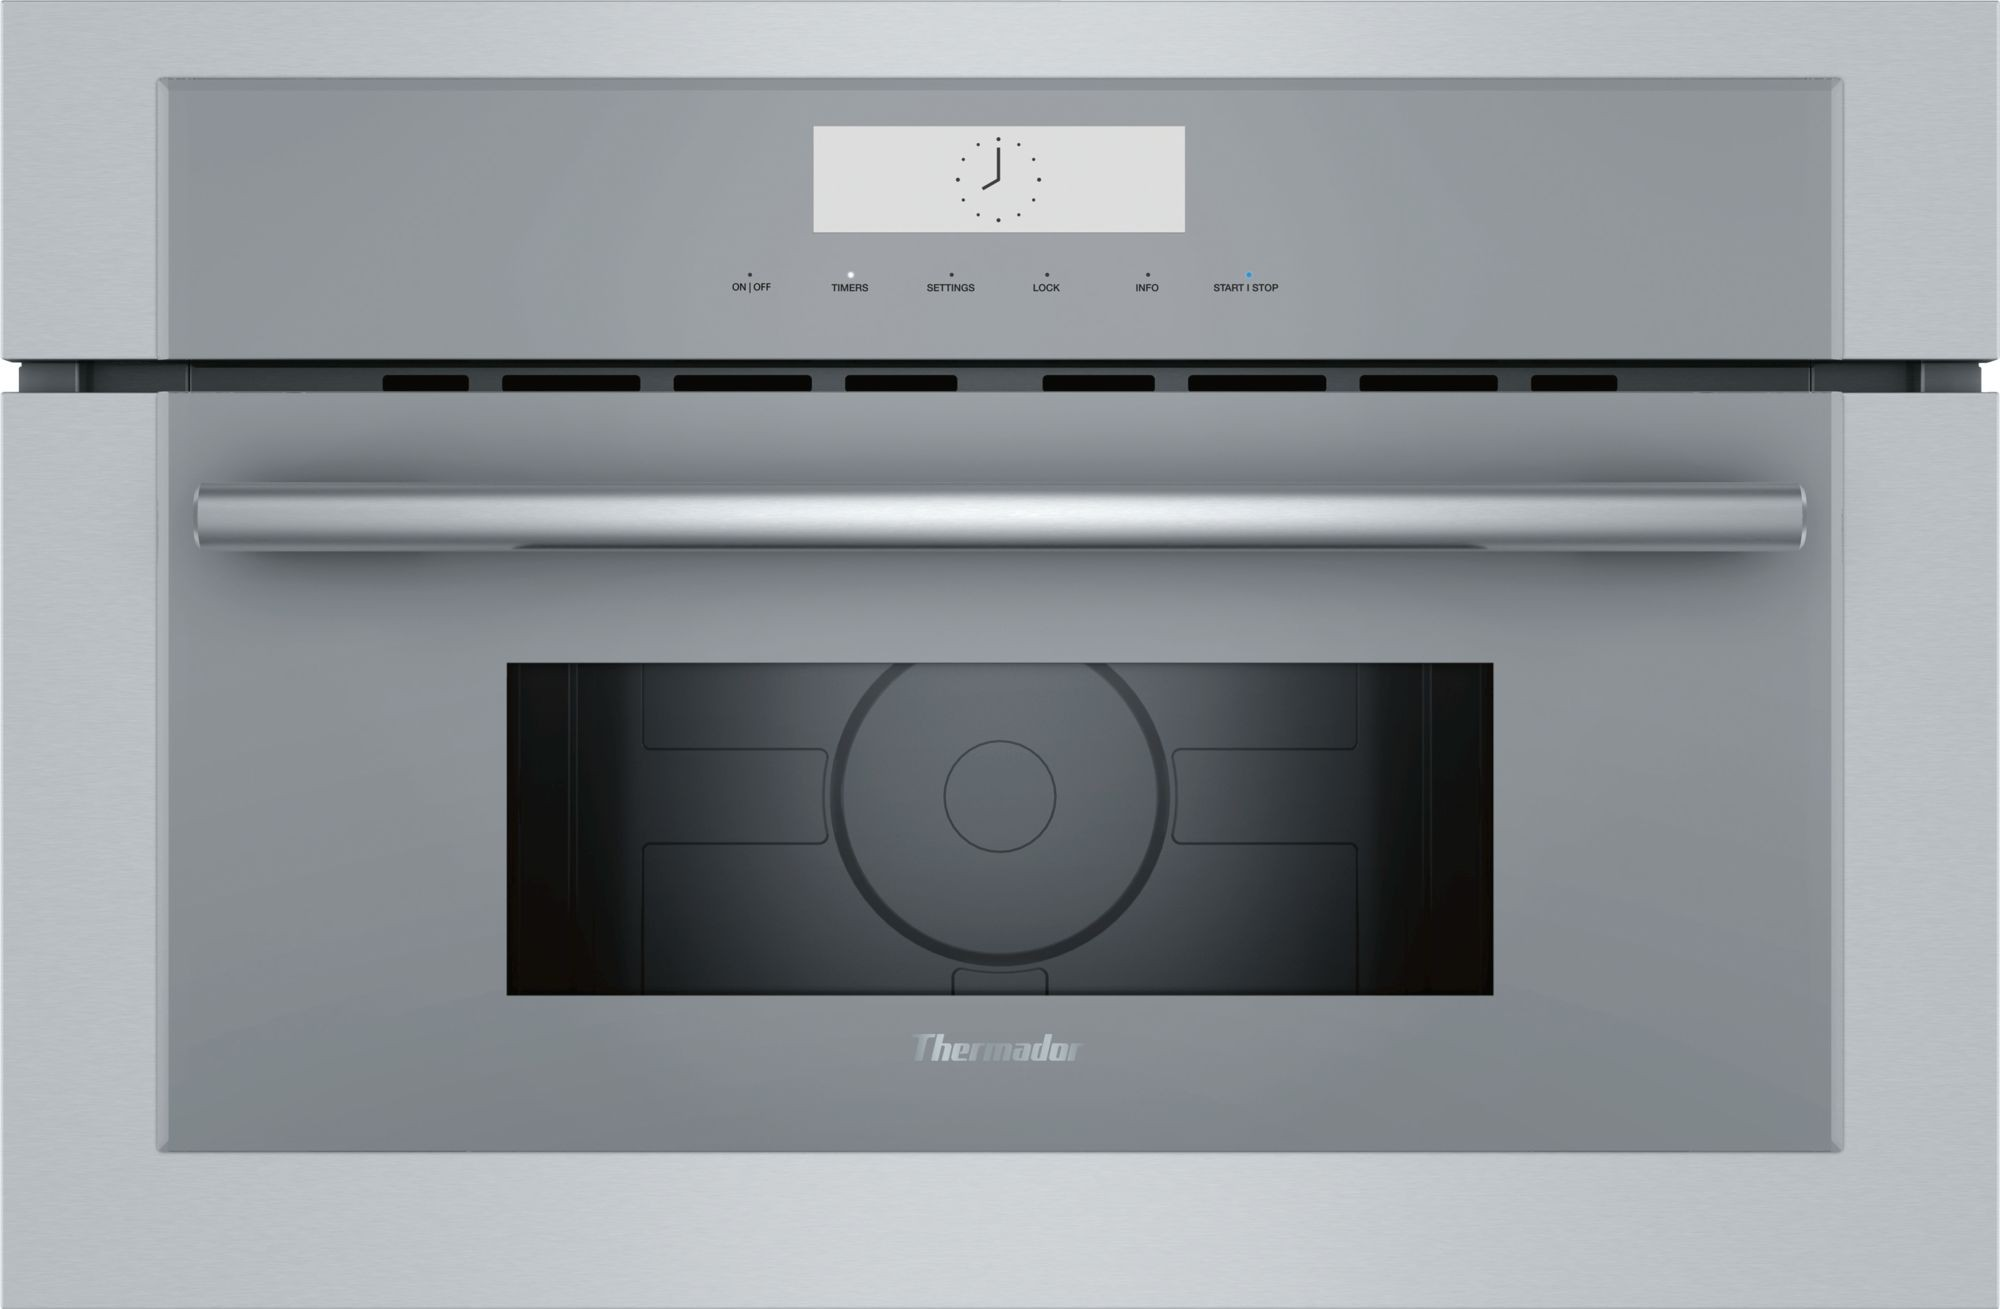 Thermador Masterpiece Series 30 Inch Built In Microwave